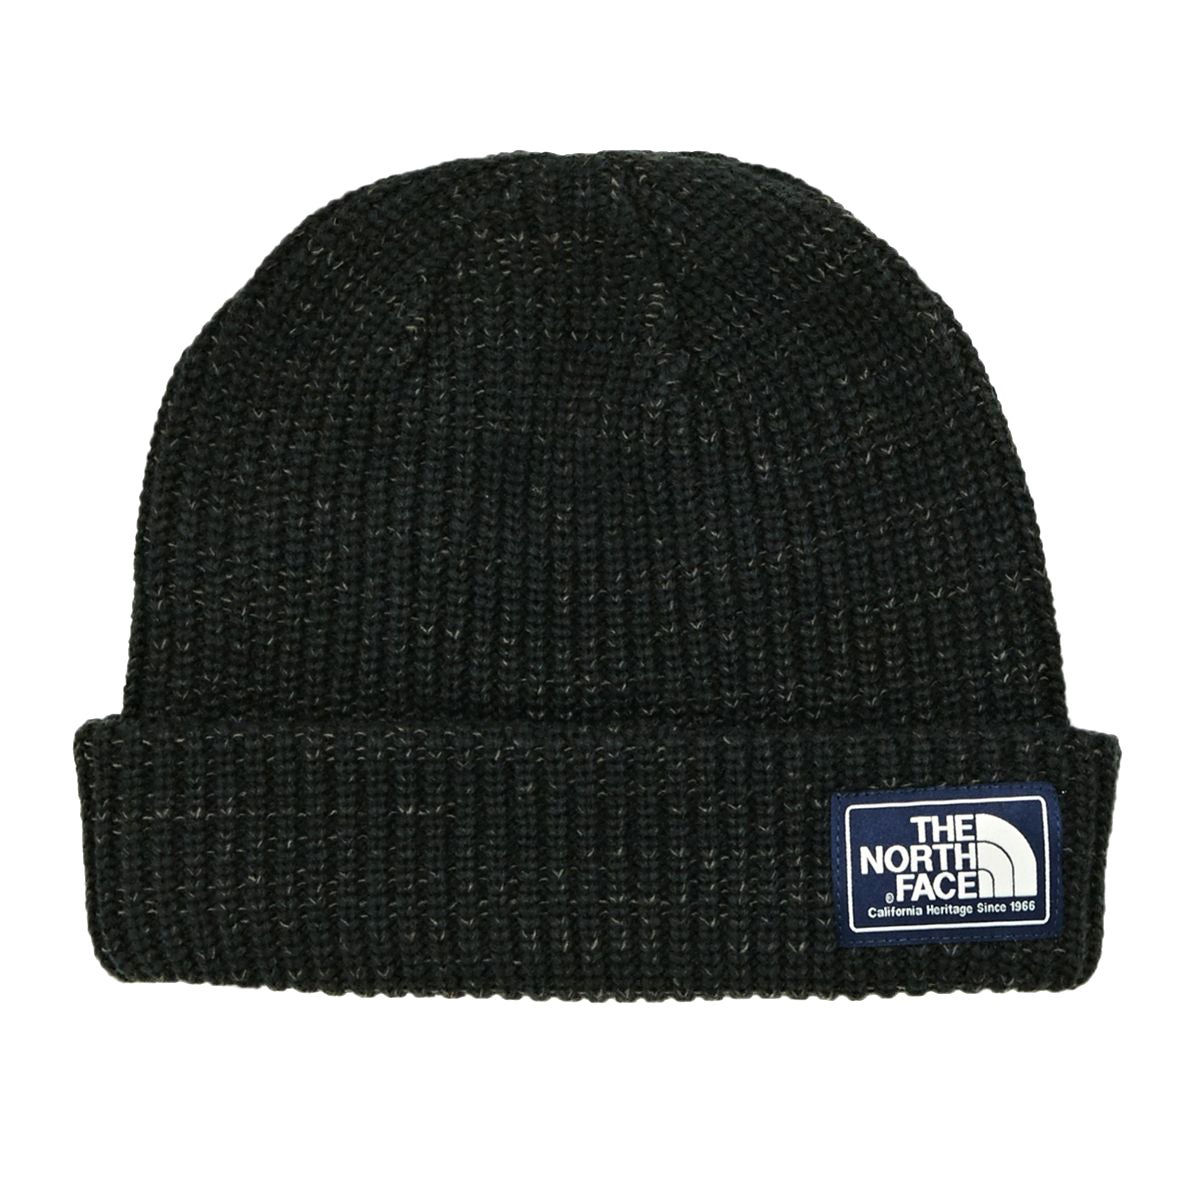 3f7d726f0 Details about The North Face Capsule Salty Dog Unisex Headwear Beanie Hat -  Tnf Black One Size